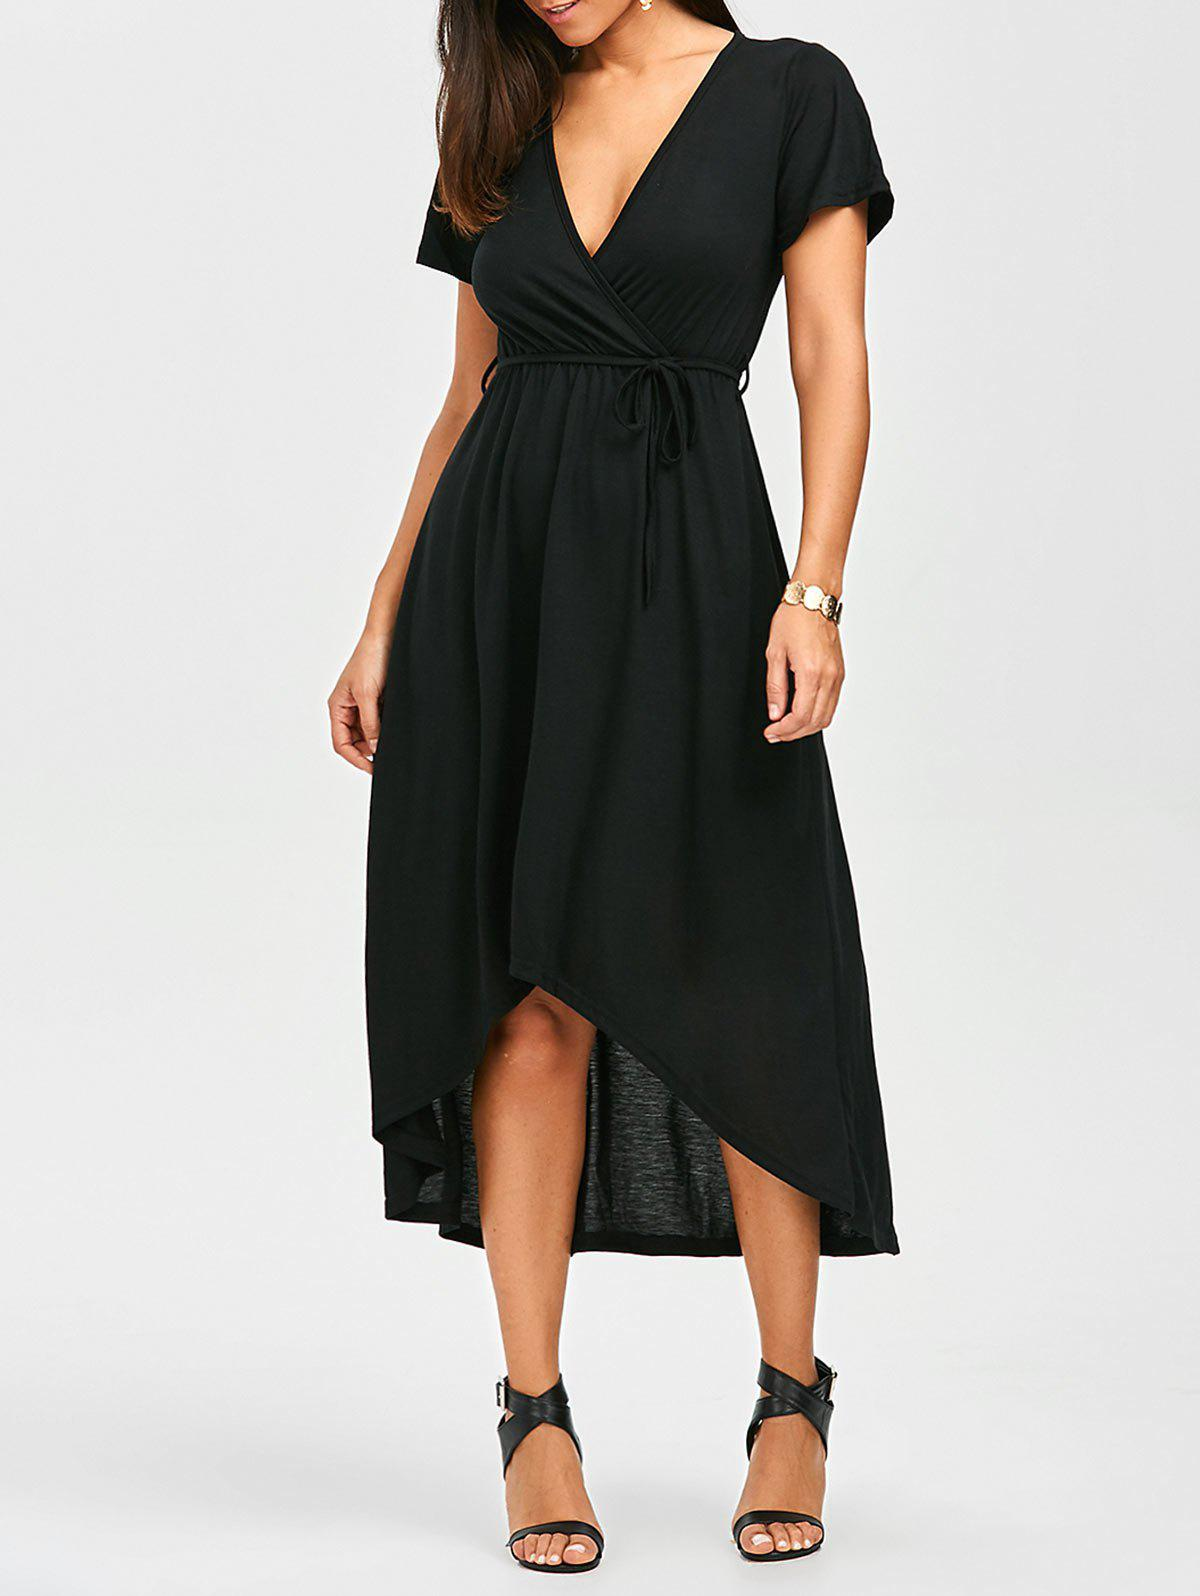 Plunging Neck A Line High Low Casual Surplice Dress - BLACK XL